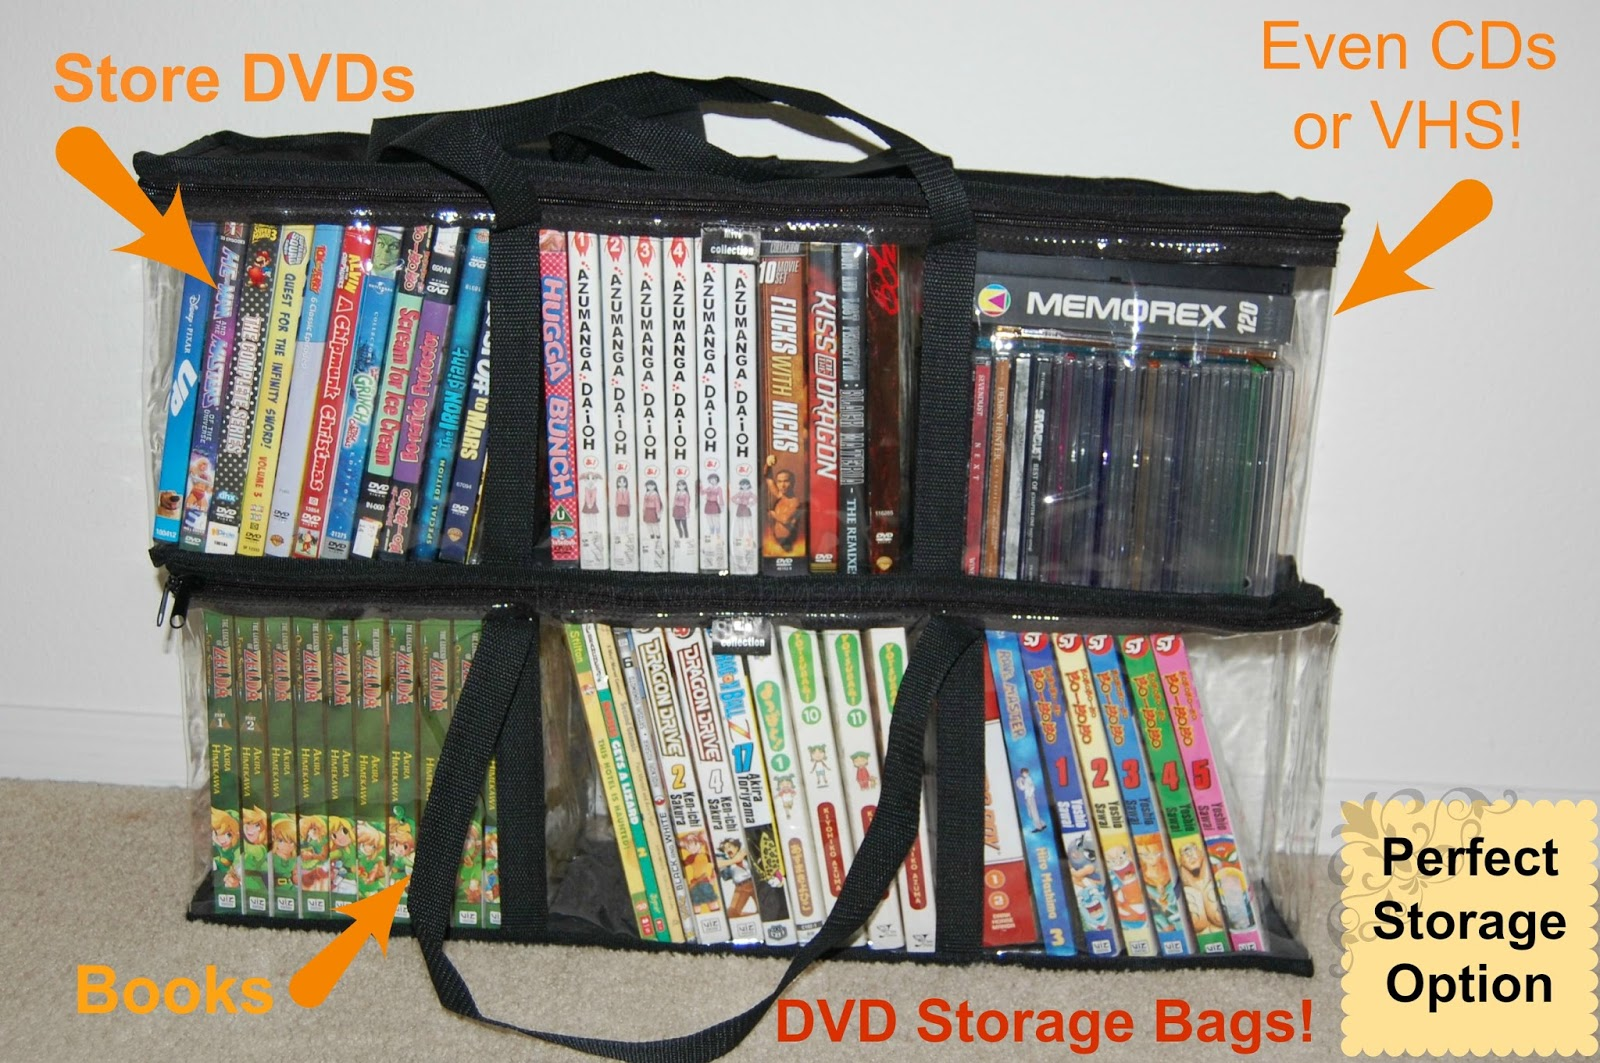 These are a great set of storage bags for all your DVD game or book organizations. You can find them available on Amazon & Temporary Waffle: Set of 2 DVD Storage Bags for DVDs Books And More!